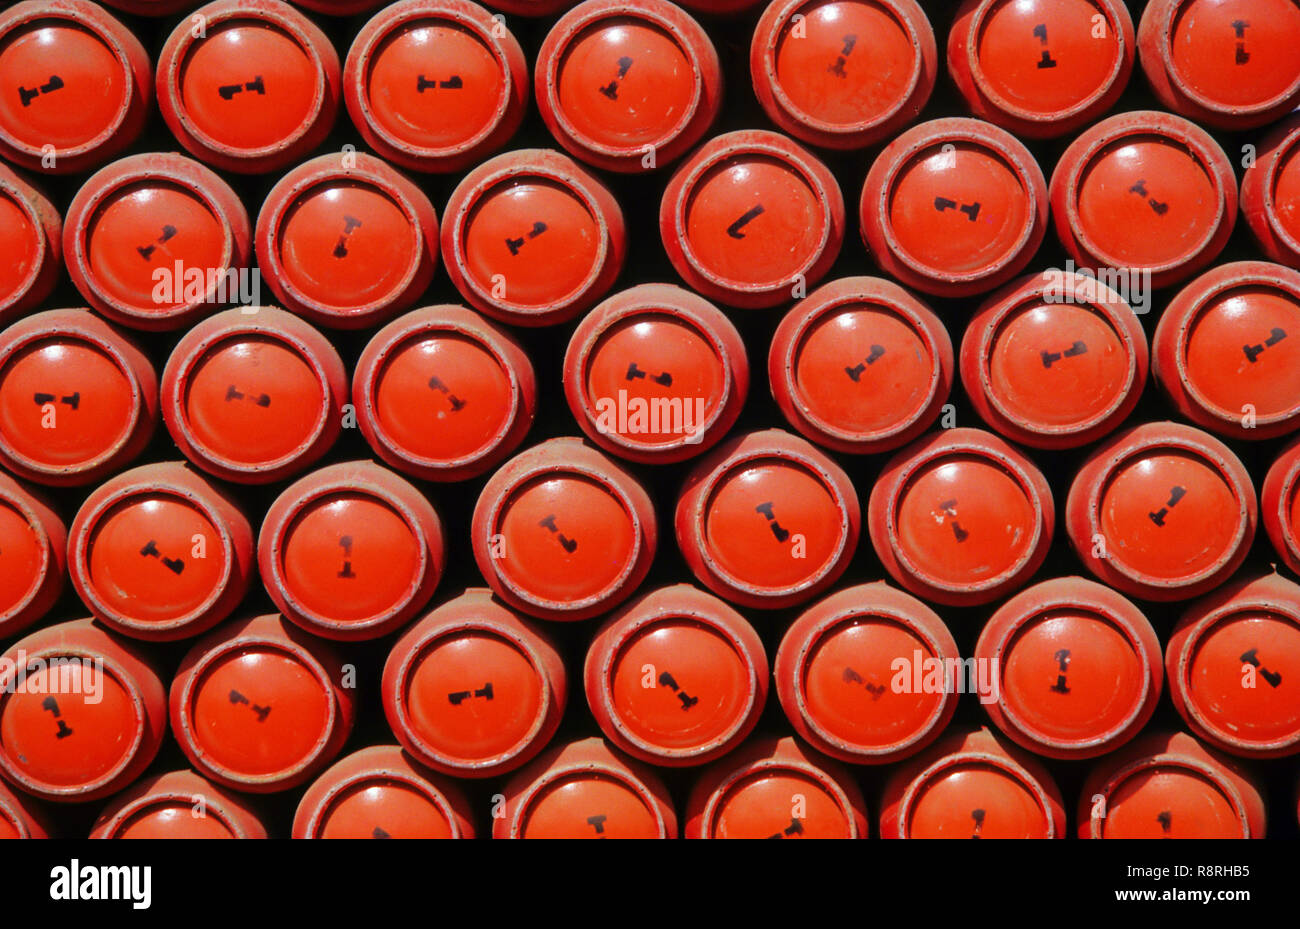 Gas Cylinders - Stock Image